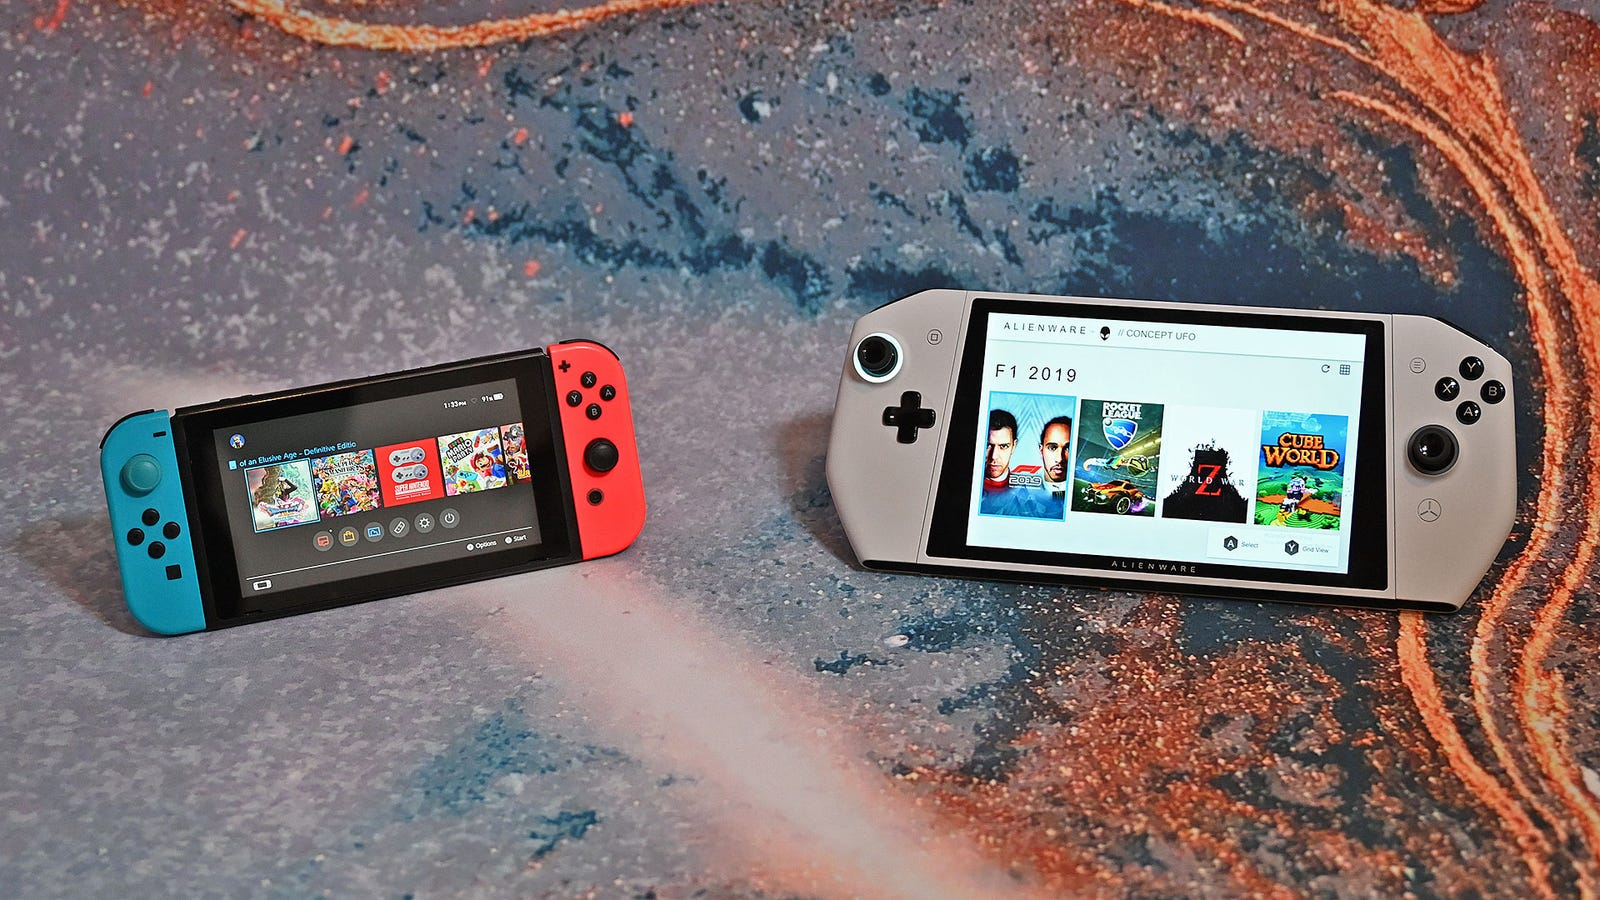 The Concept UFO vs the Switch: Which one would you want?